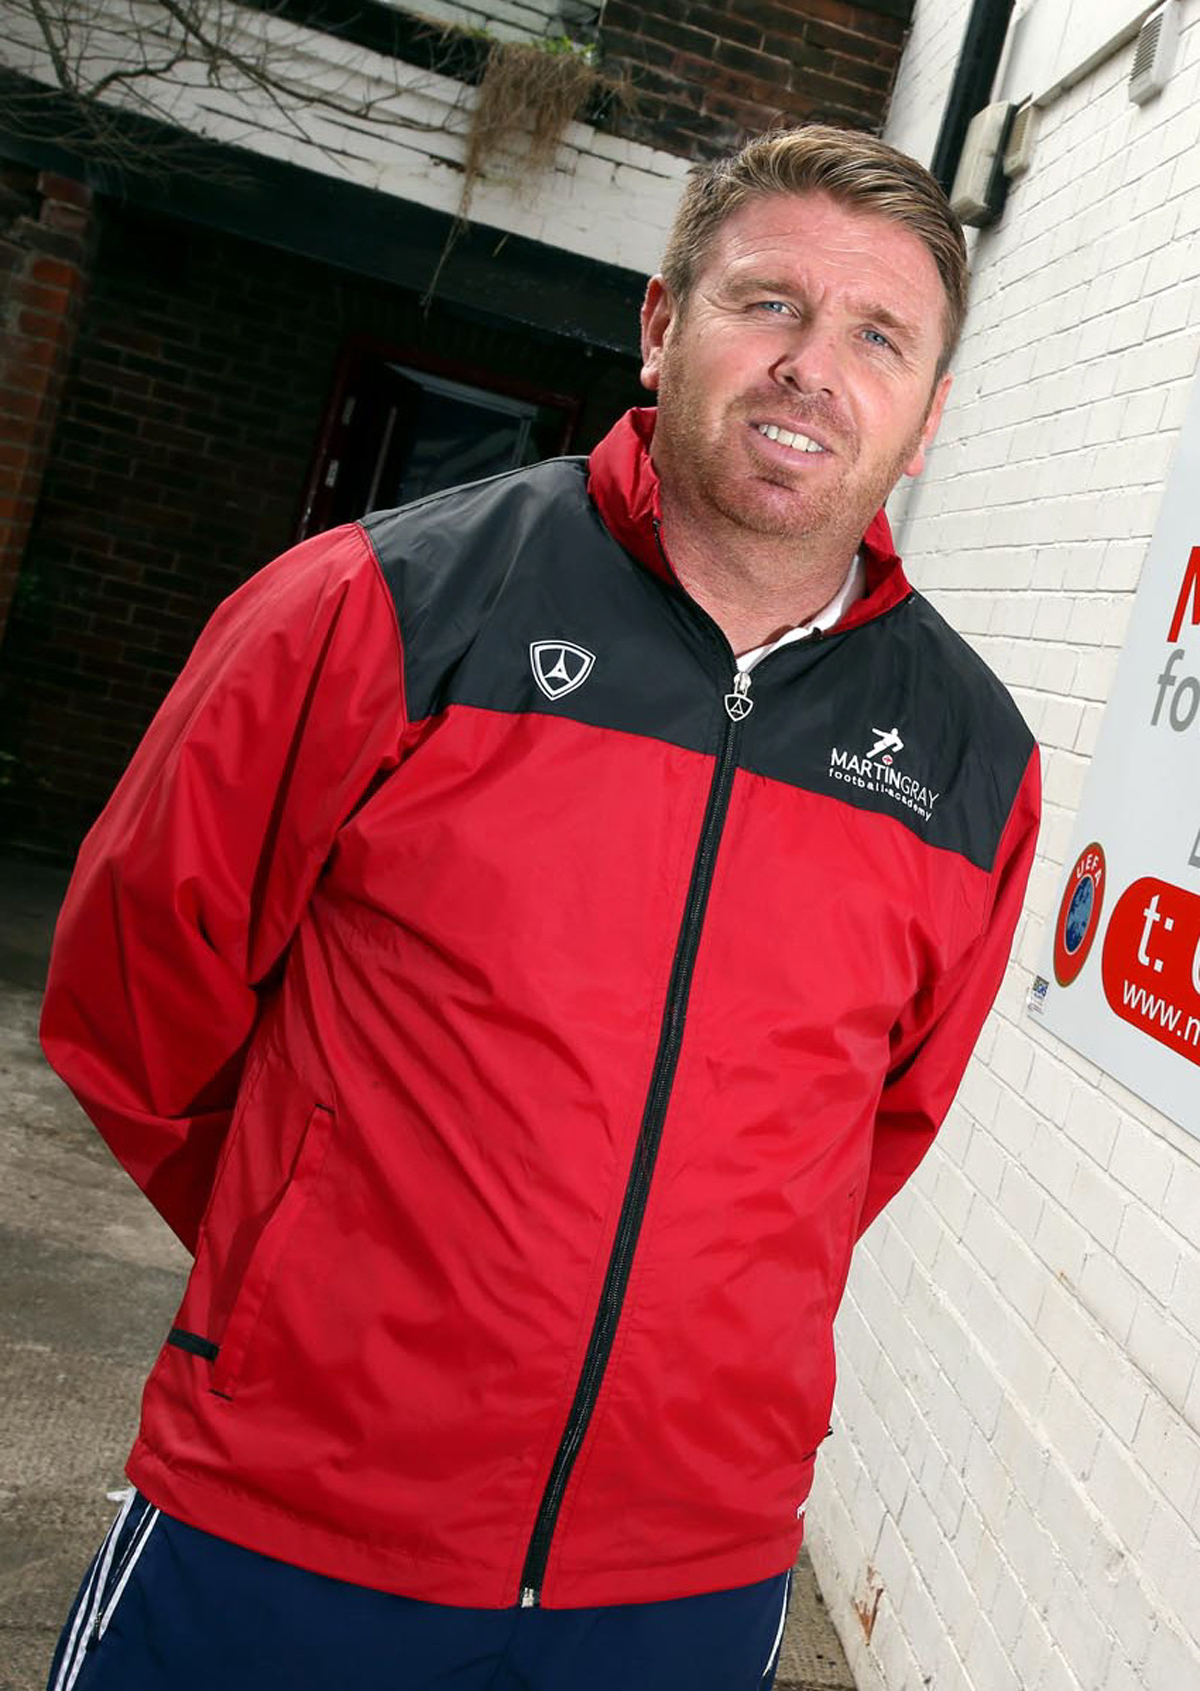 Martin Gray - manager